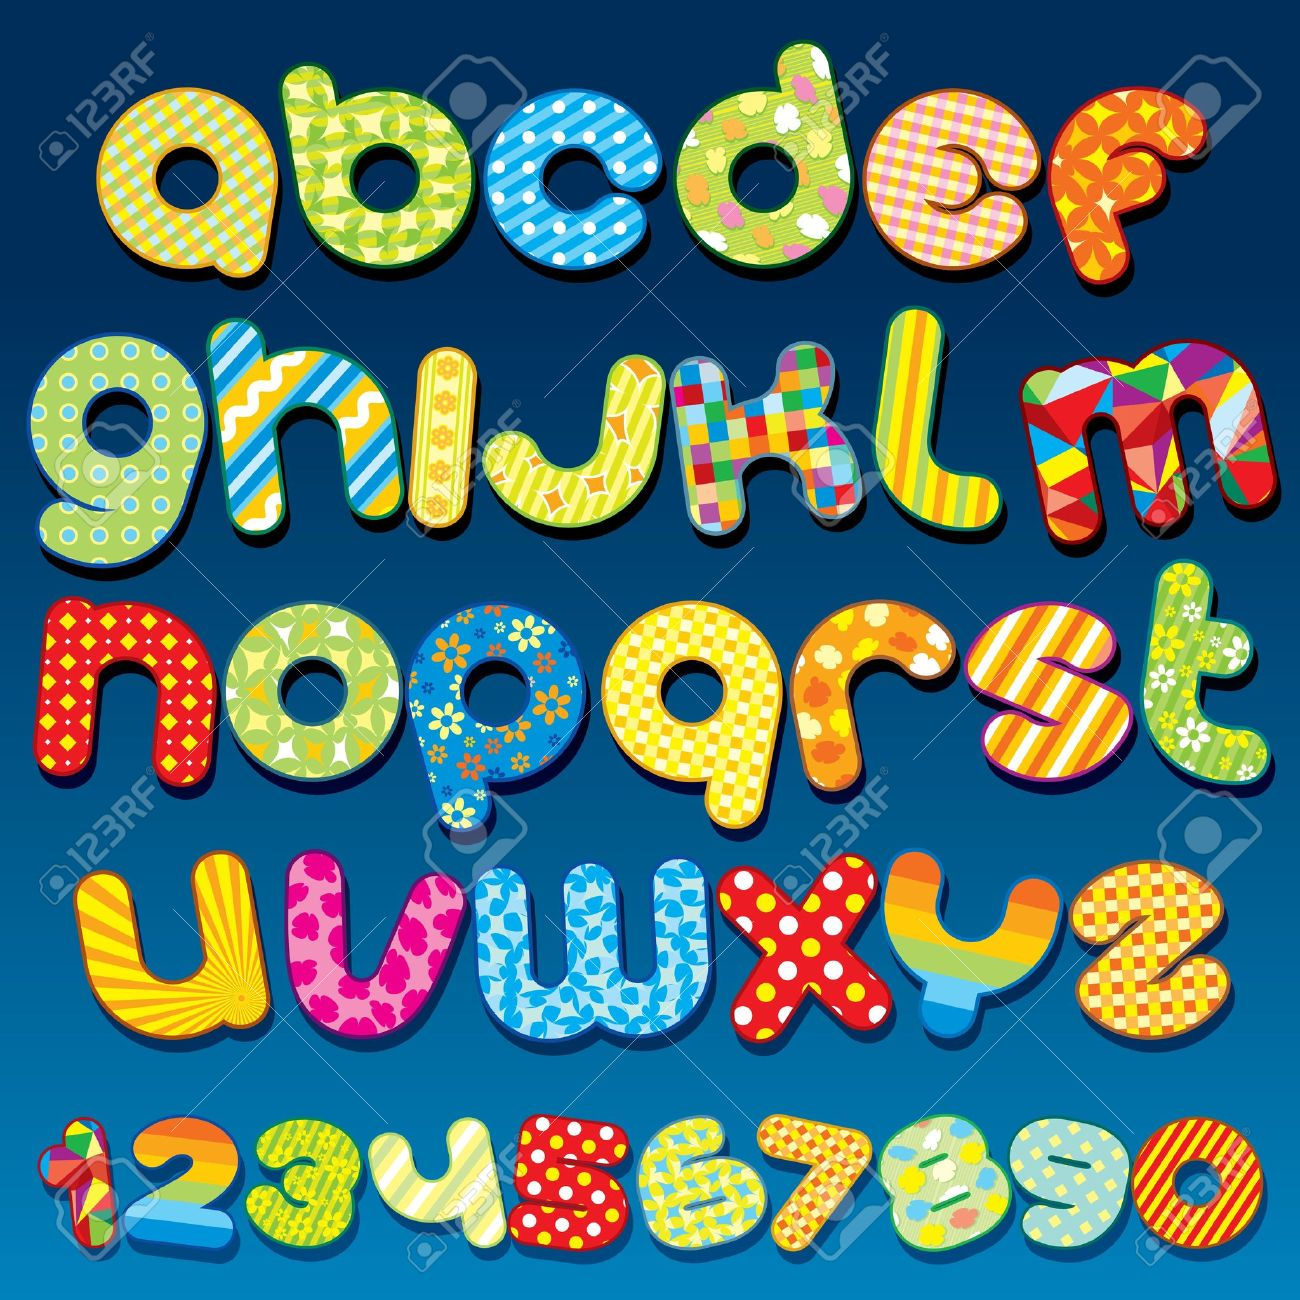 Alphabet clipart a z. Funky cartoon vector font